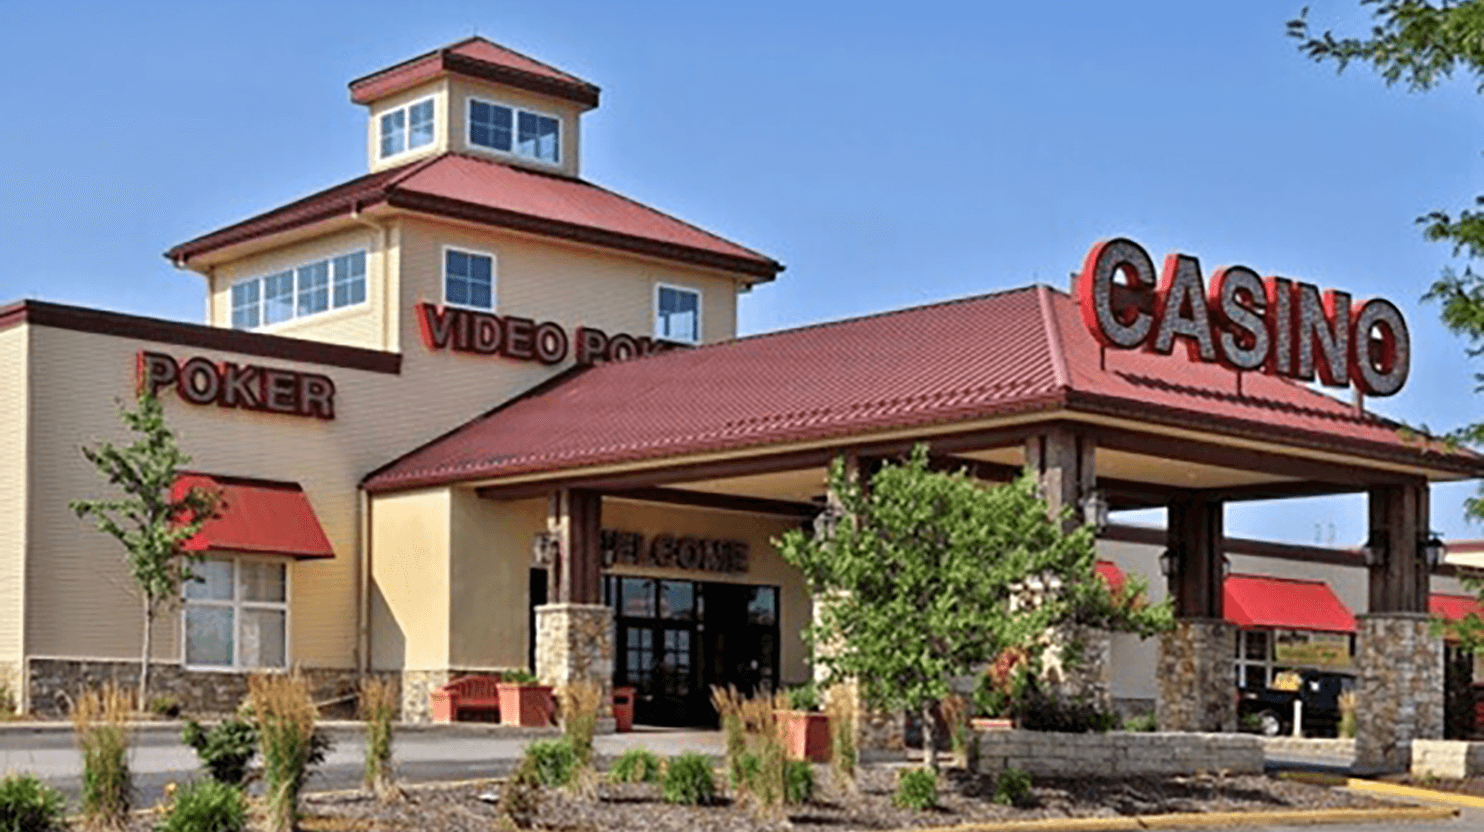 Lakeside casino osceola iowa phone number &